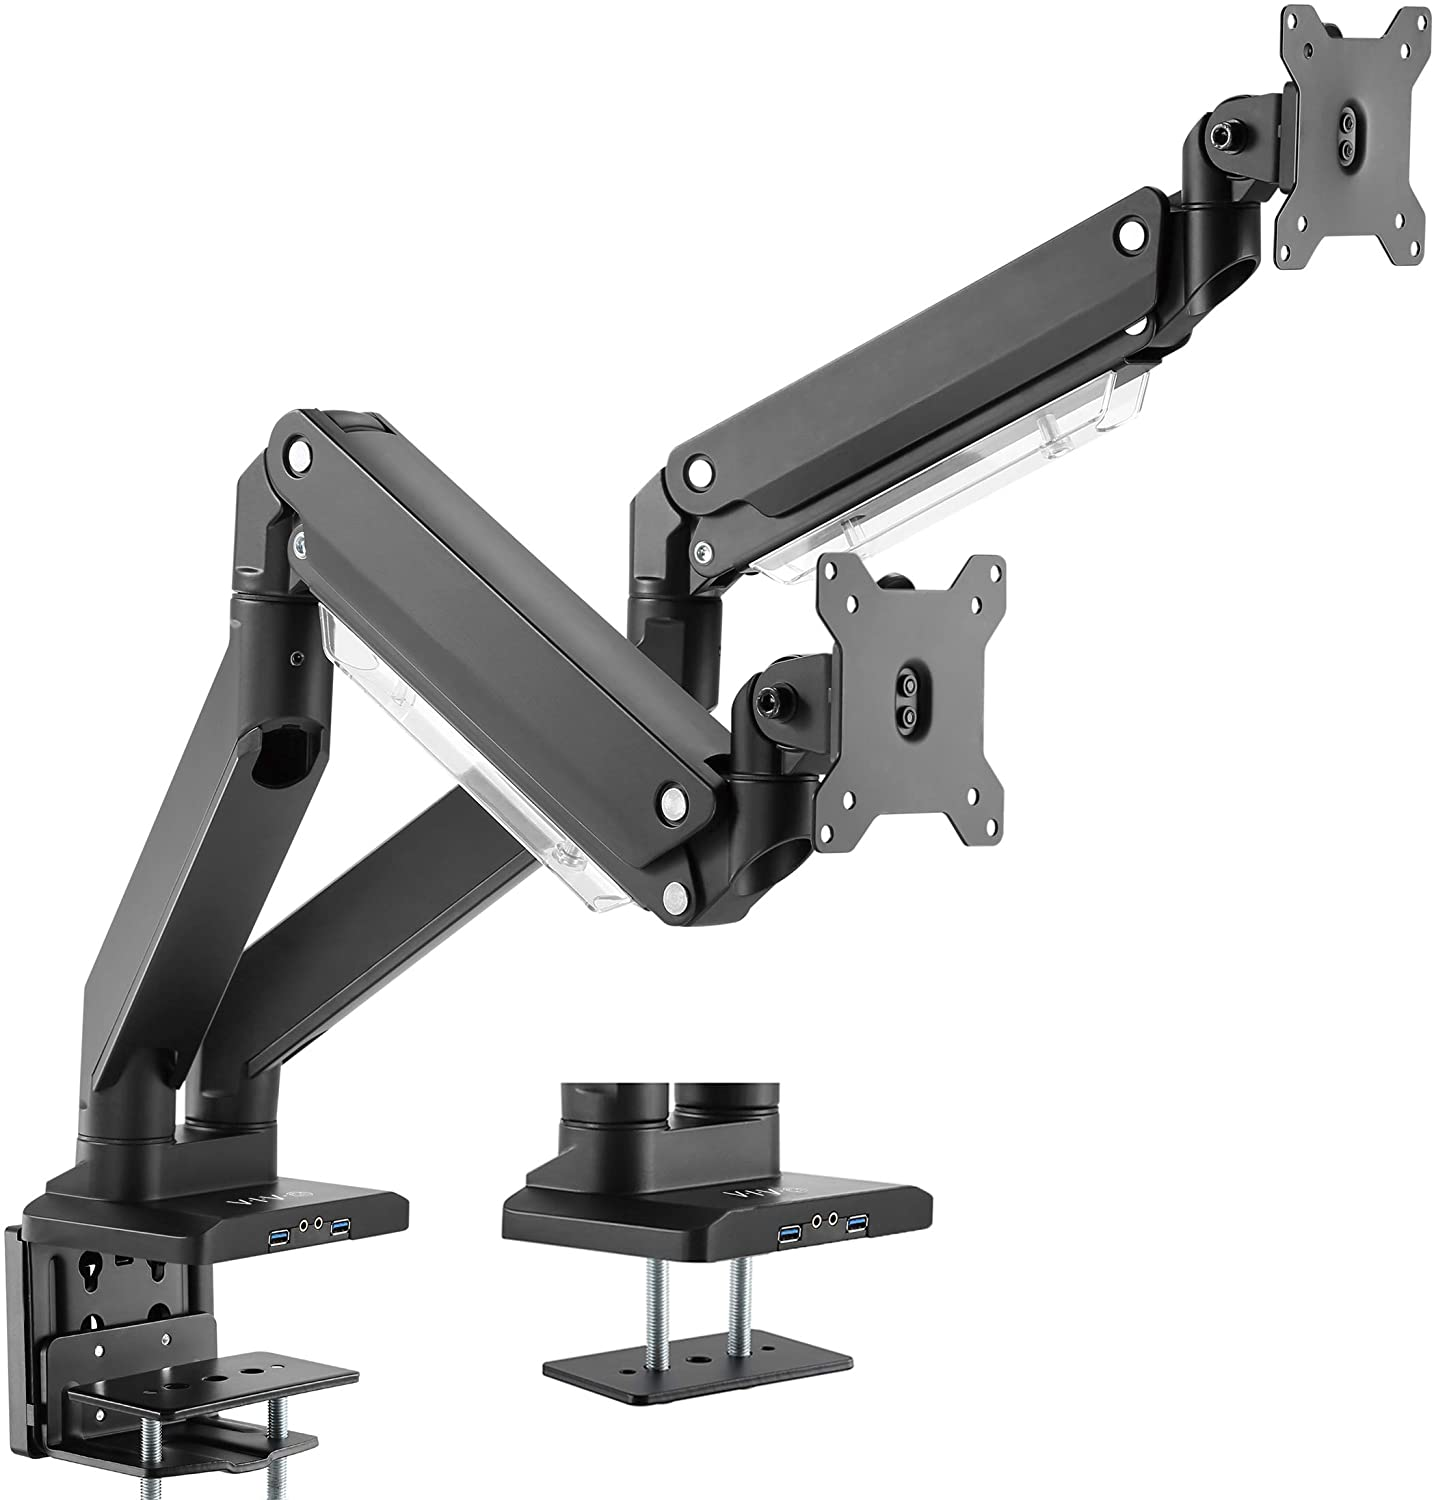 VIVO Premium Aluminum Dual Monitor Pneumatic Spring Arms Desk Mount Stand with USB 3.0 and Audio/Mic Ports, Fits 2 Screens up to 32 inches (STAND-V102G2U)